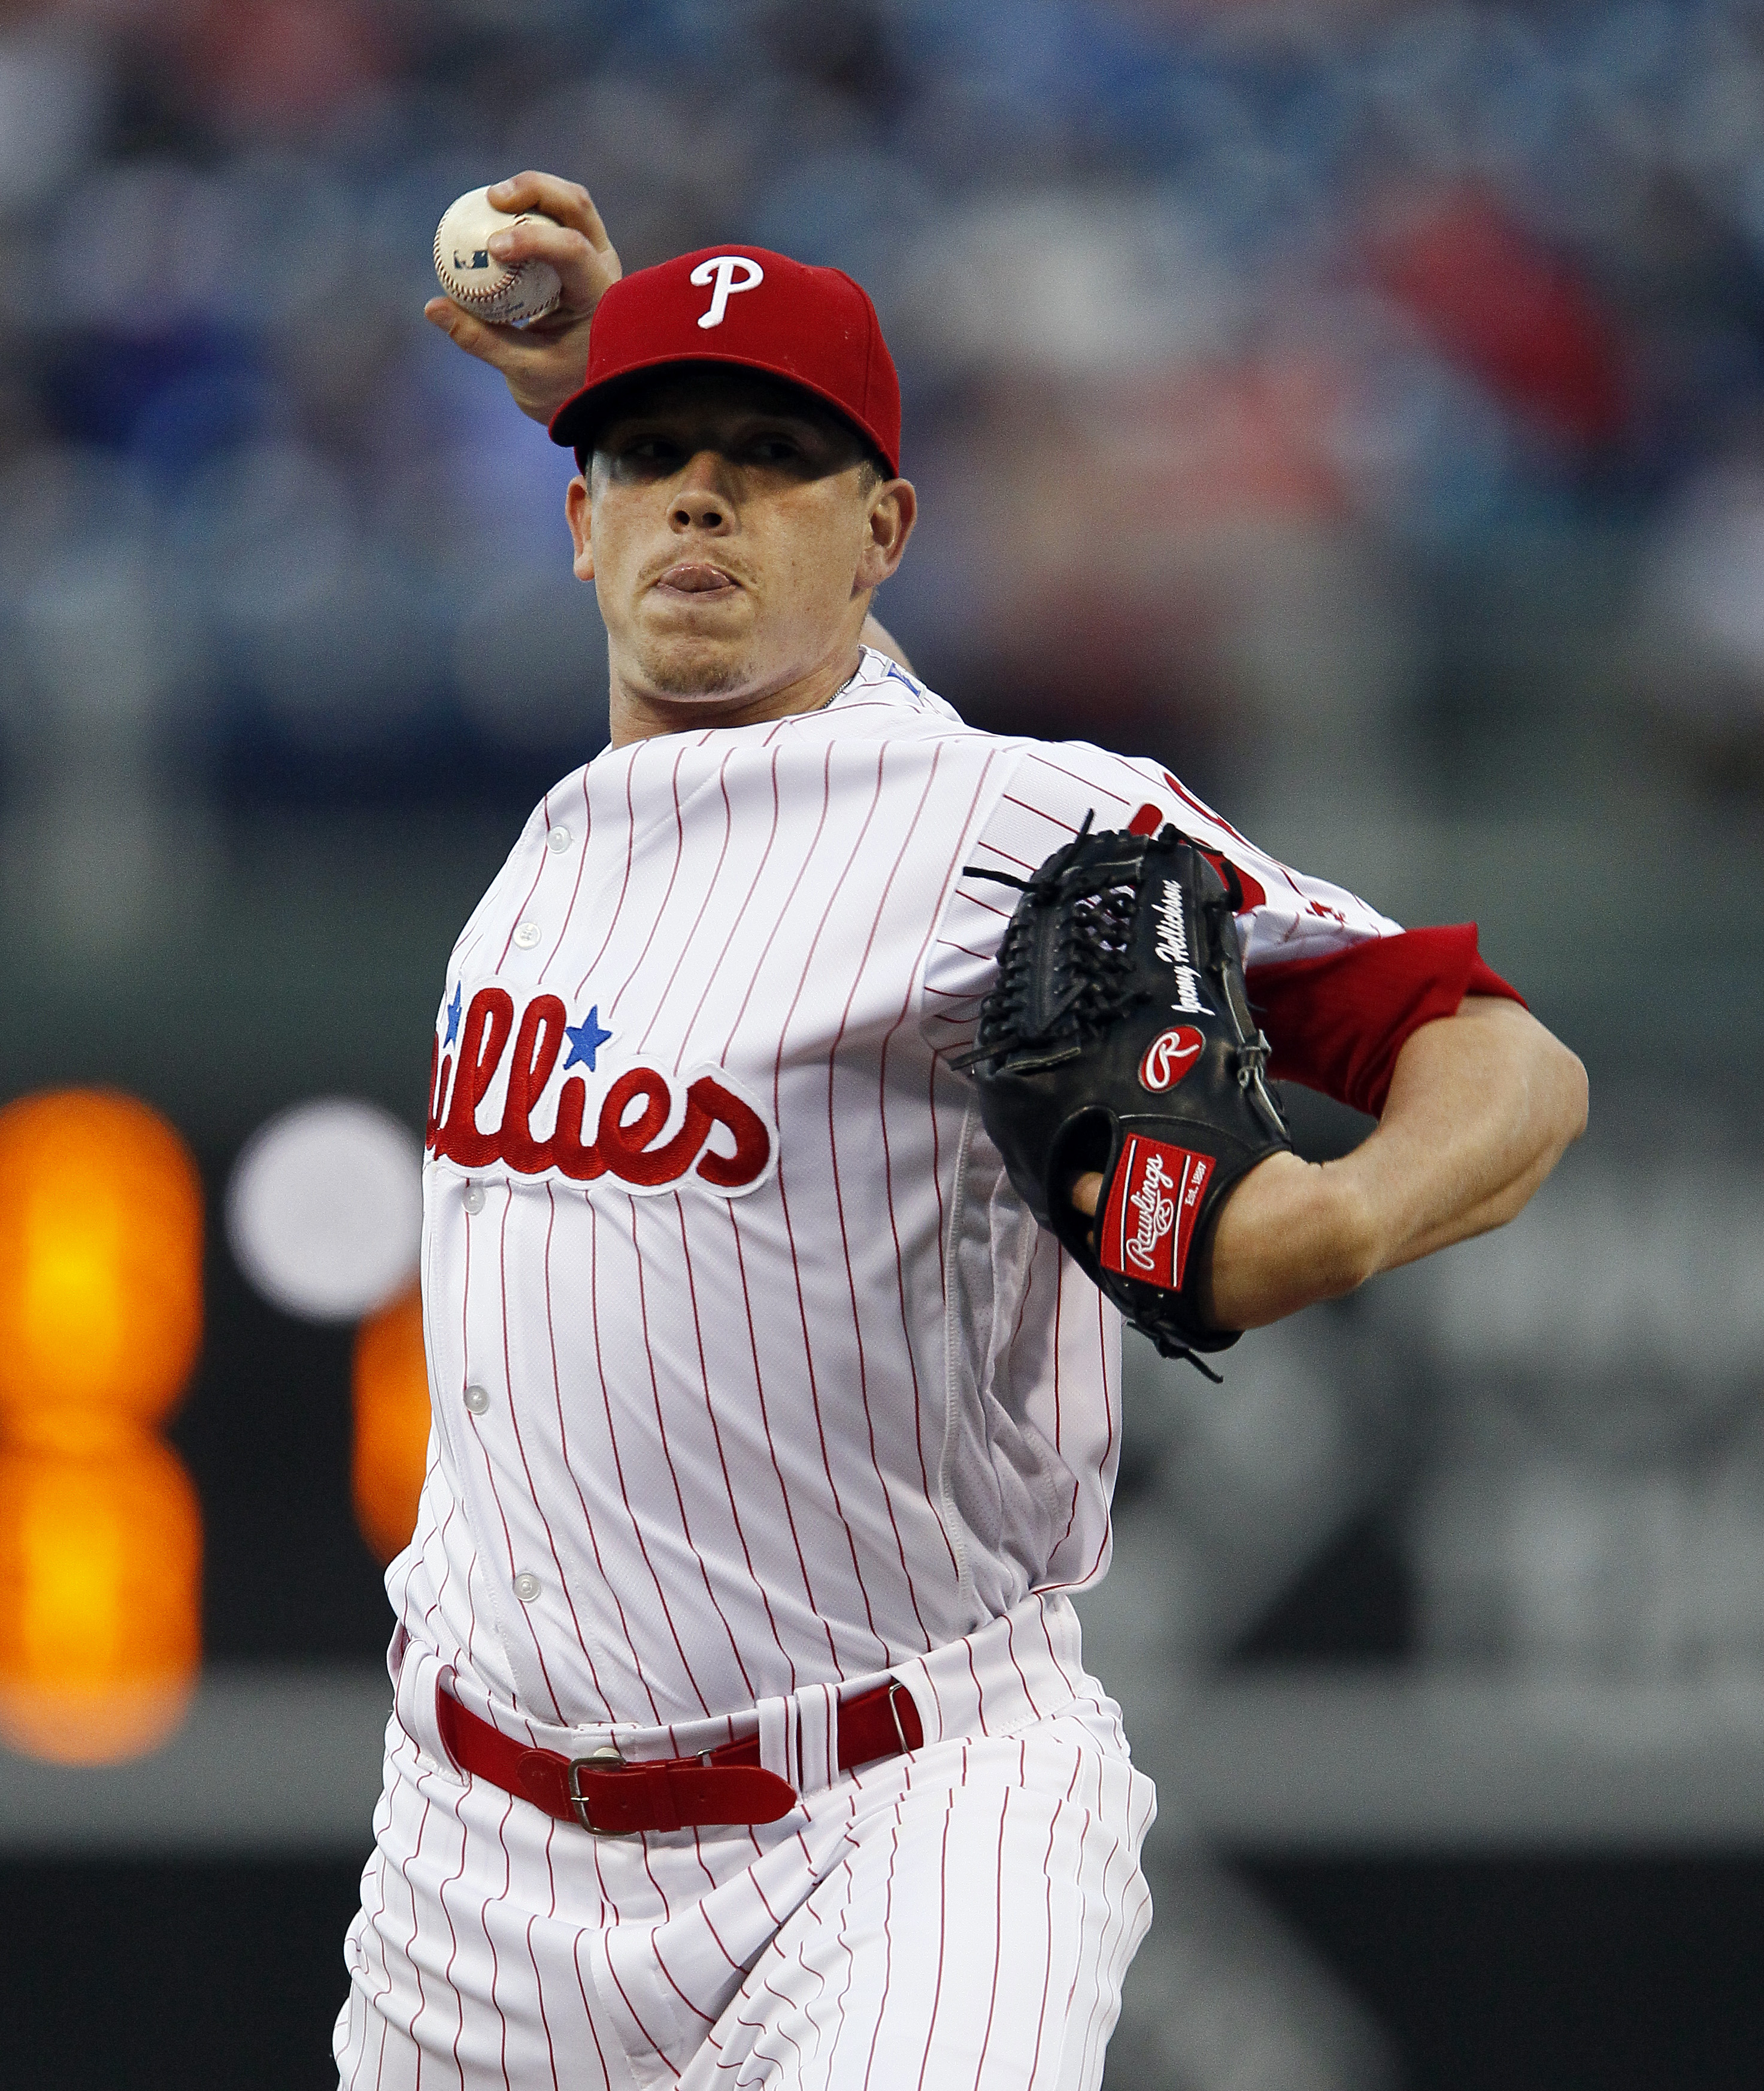 CORRECTS TO JEREMY HELLICKSON, INSTEAD OF PETER BOURJOS - Philadelphia Phillies' Jeremy Hellickson throws during the first inning of a baseball game against the New York Mets  Wednesday, April 20, 2016 in Philadelphia. (AP Photo/Tom Mihalek)